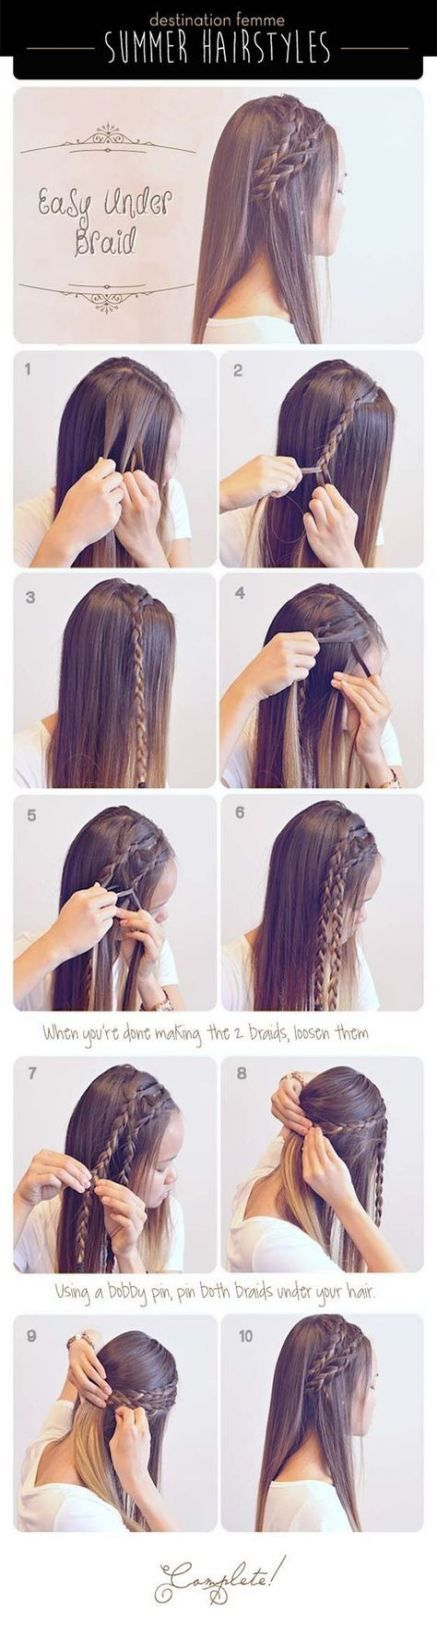 15 Trendy Hairstyles Tumblr Tutorials French Braids Braids For Long Hair Hair Styles Hair Braid Diy